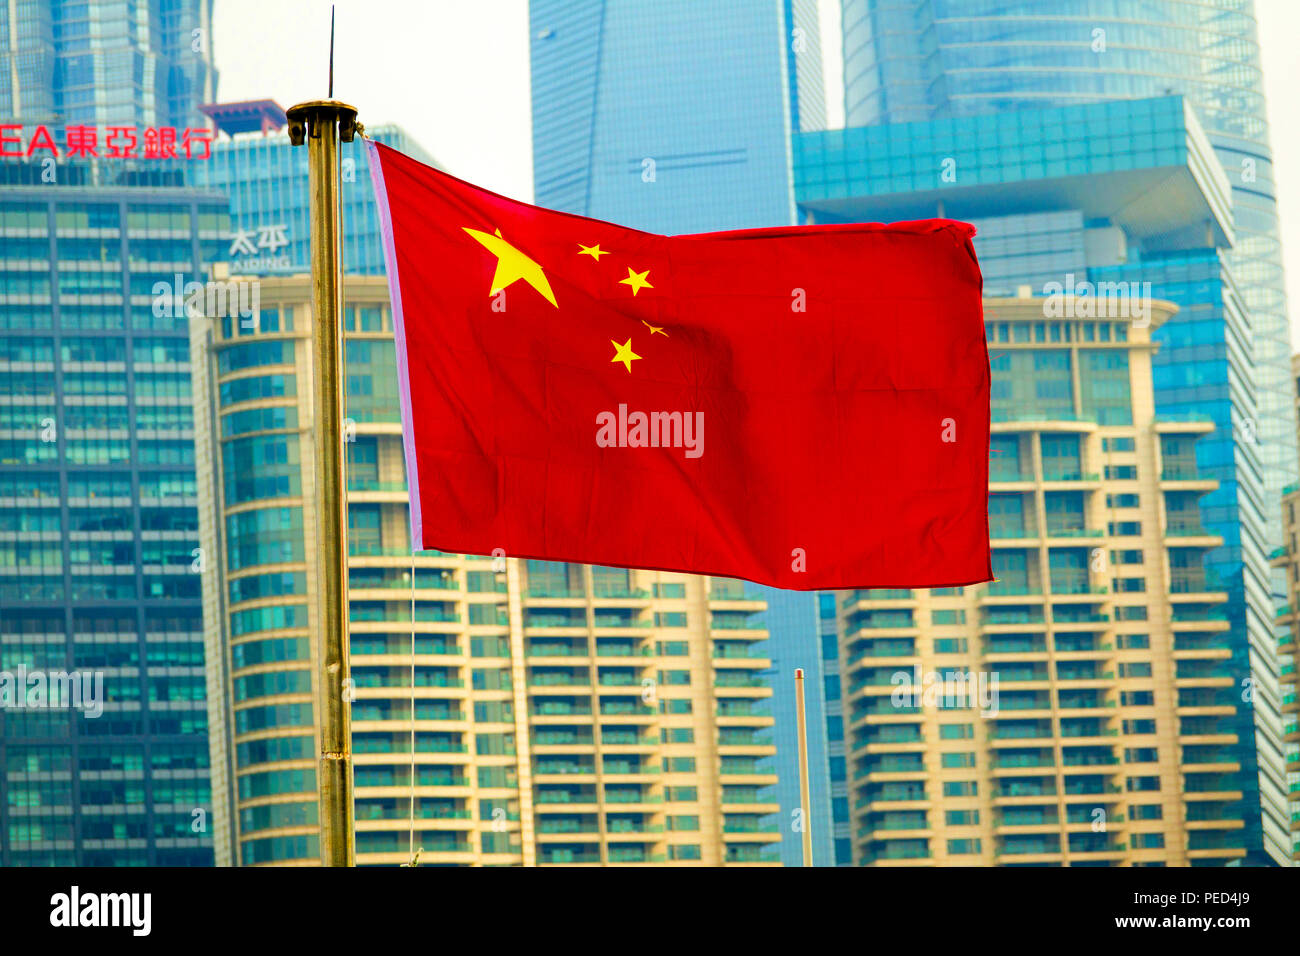 Flag of People's Republic of China in Shanghai Communist Party with Skyline in background - Stock Image